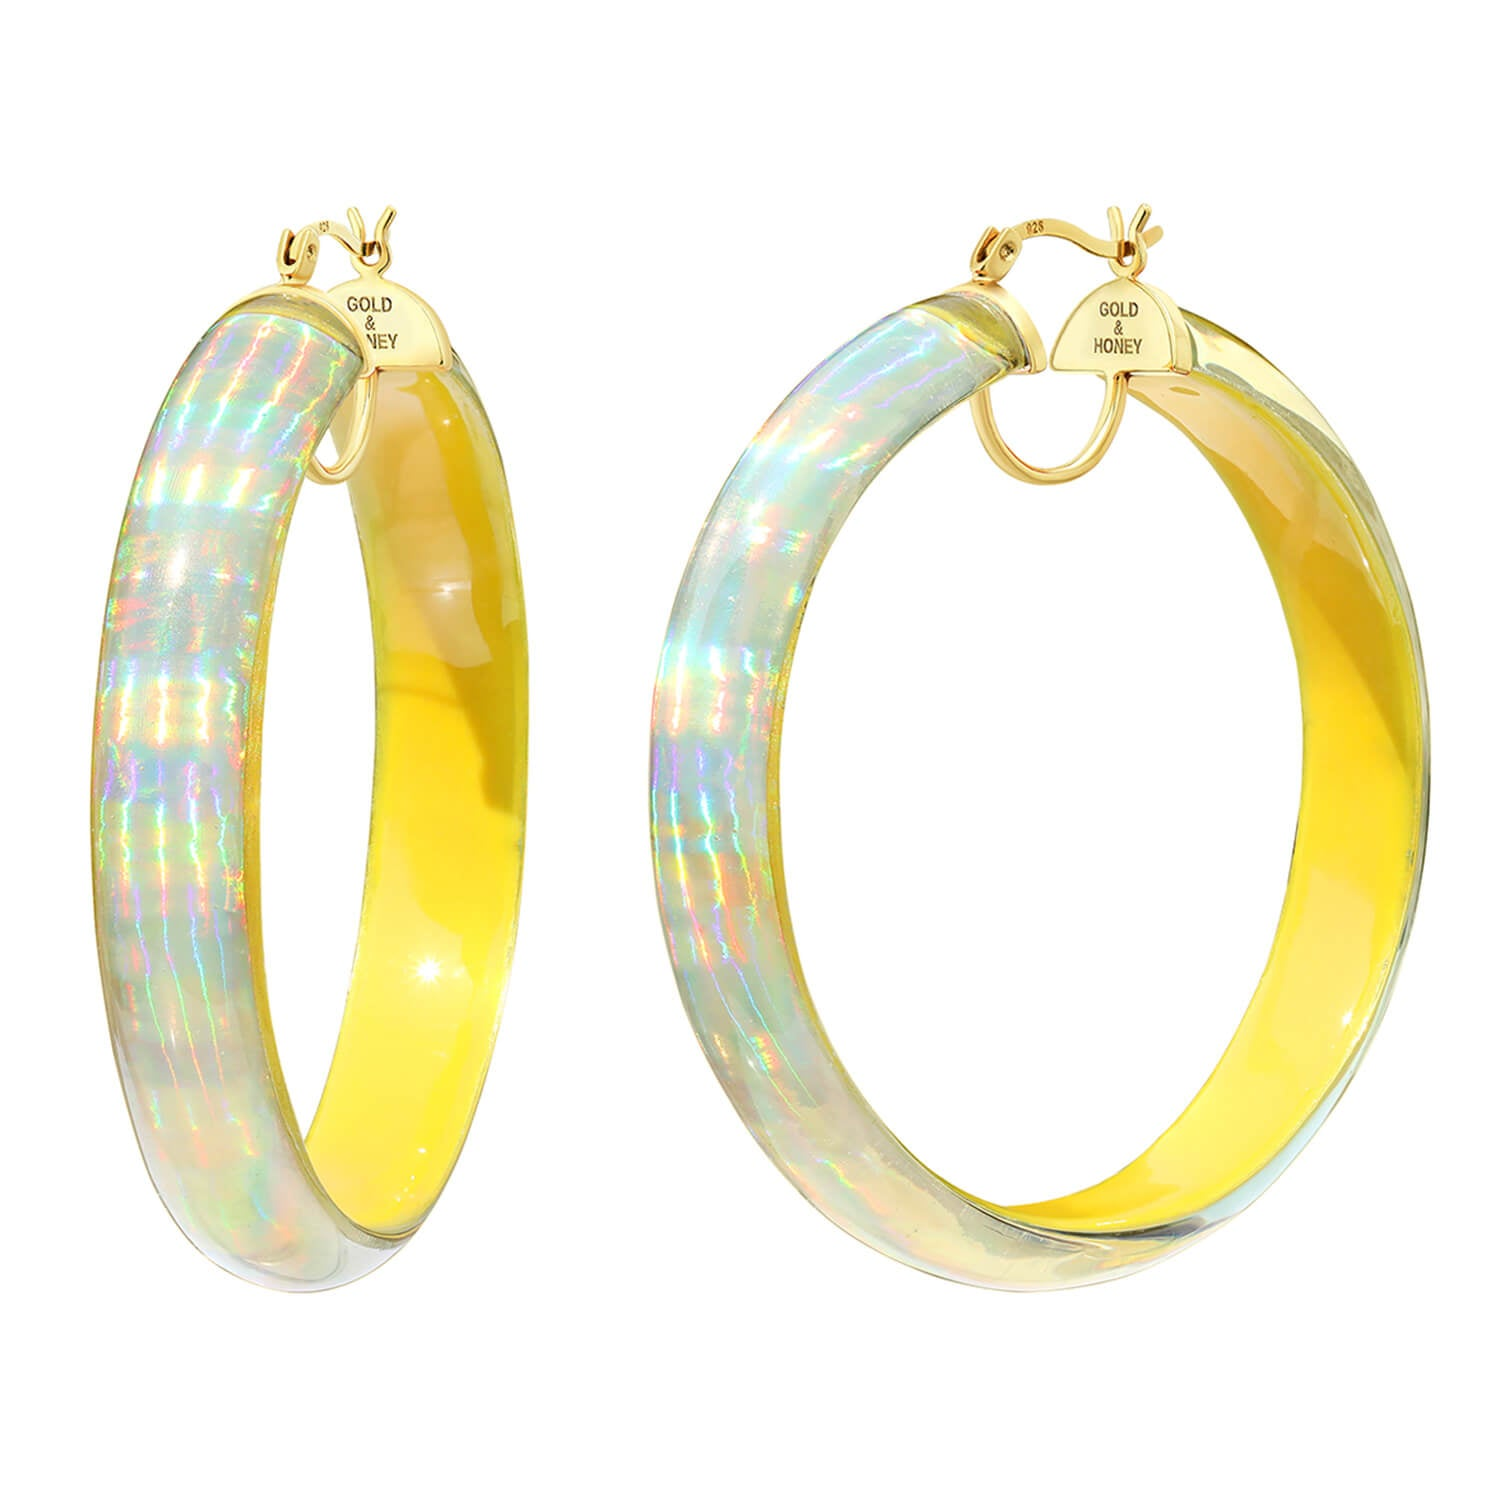 Large Rave Lucite Hoops in Yellow